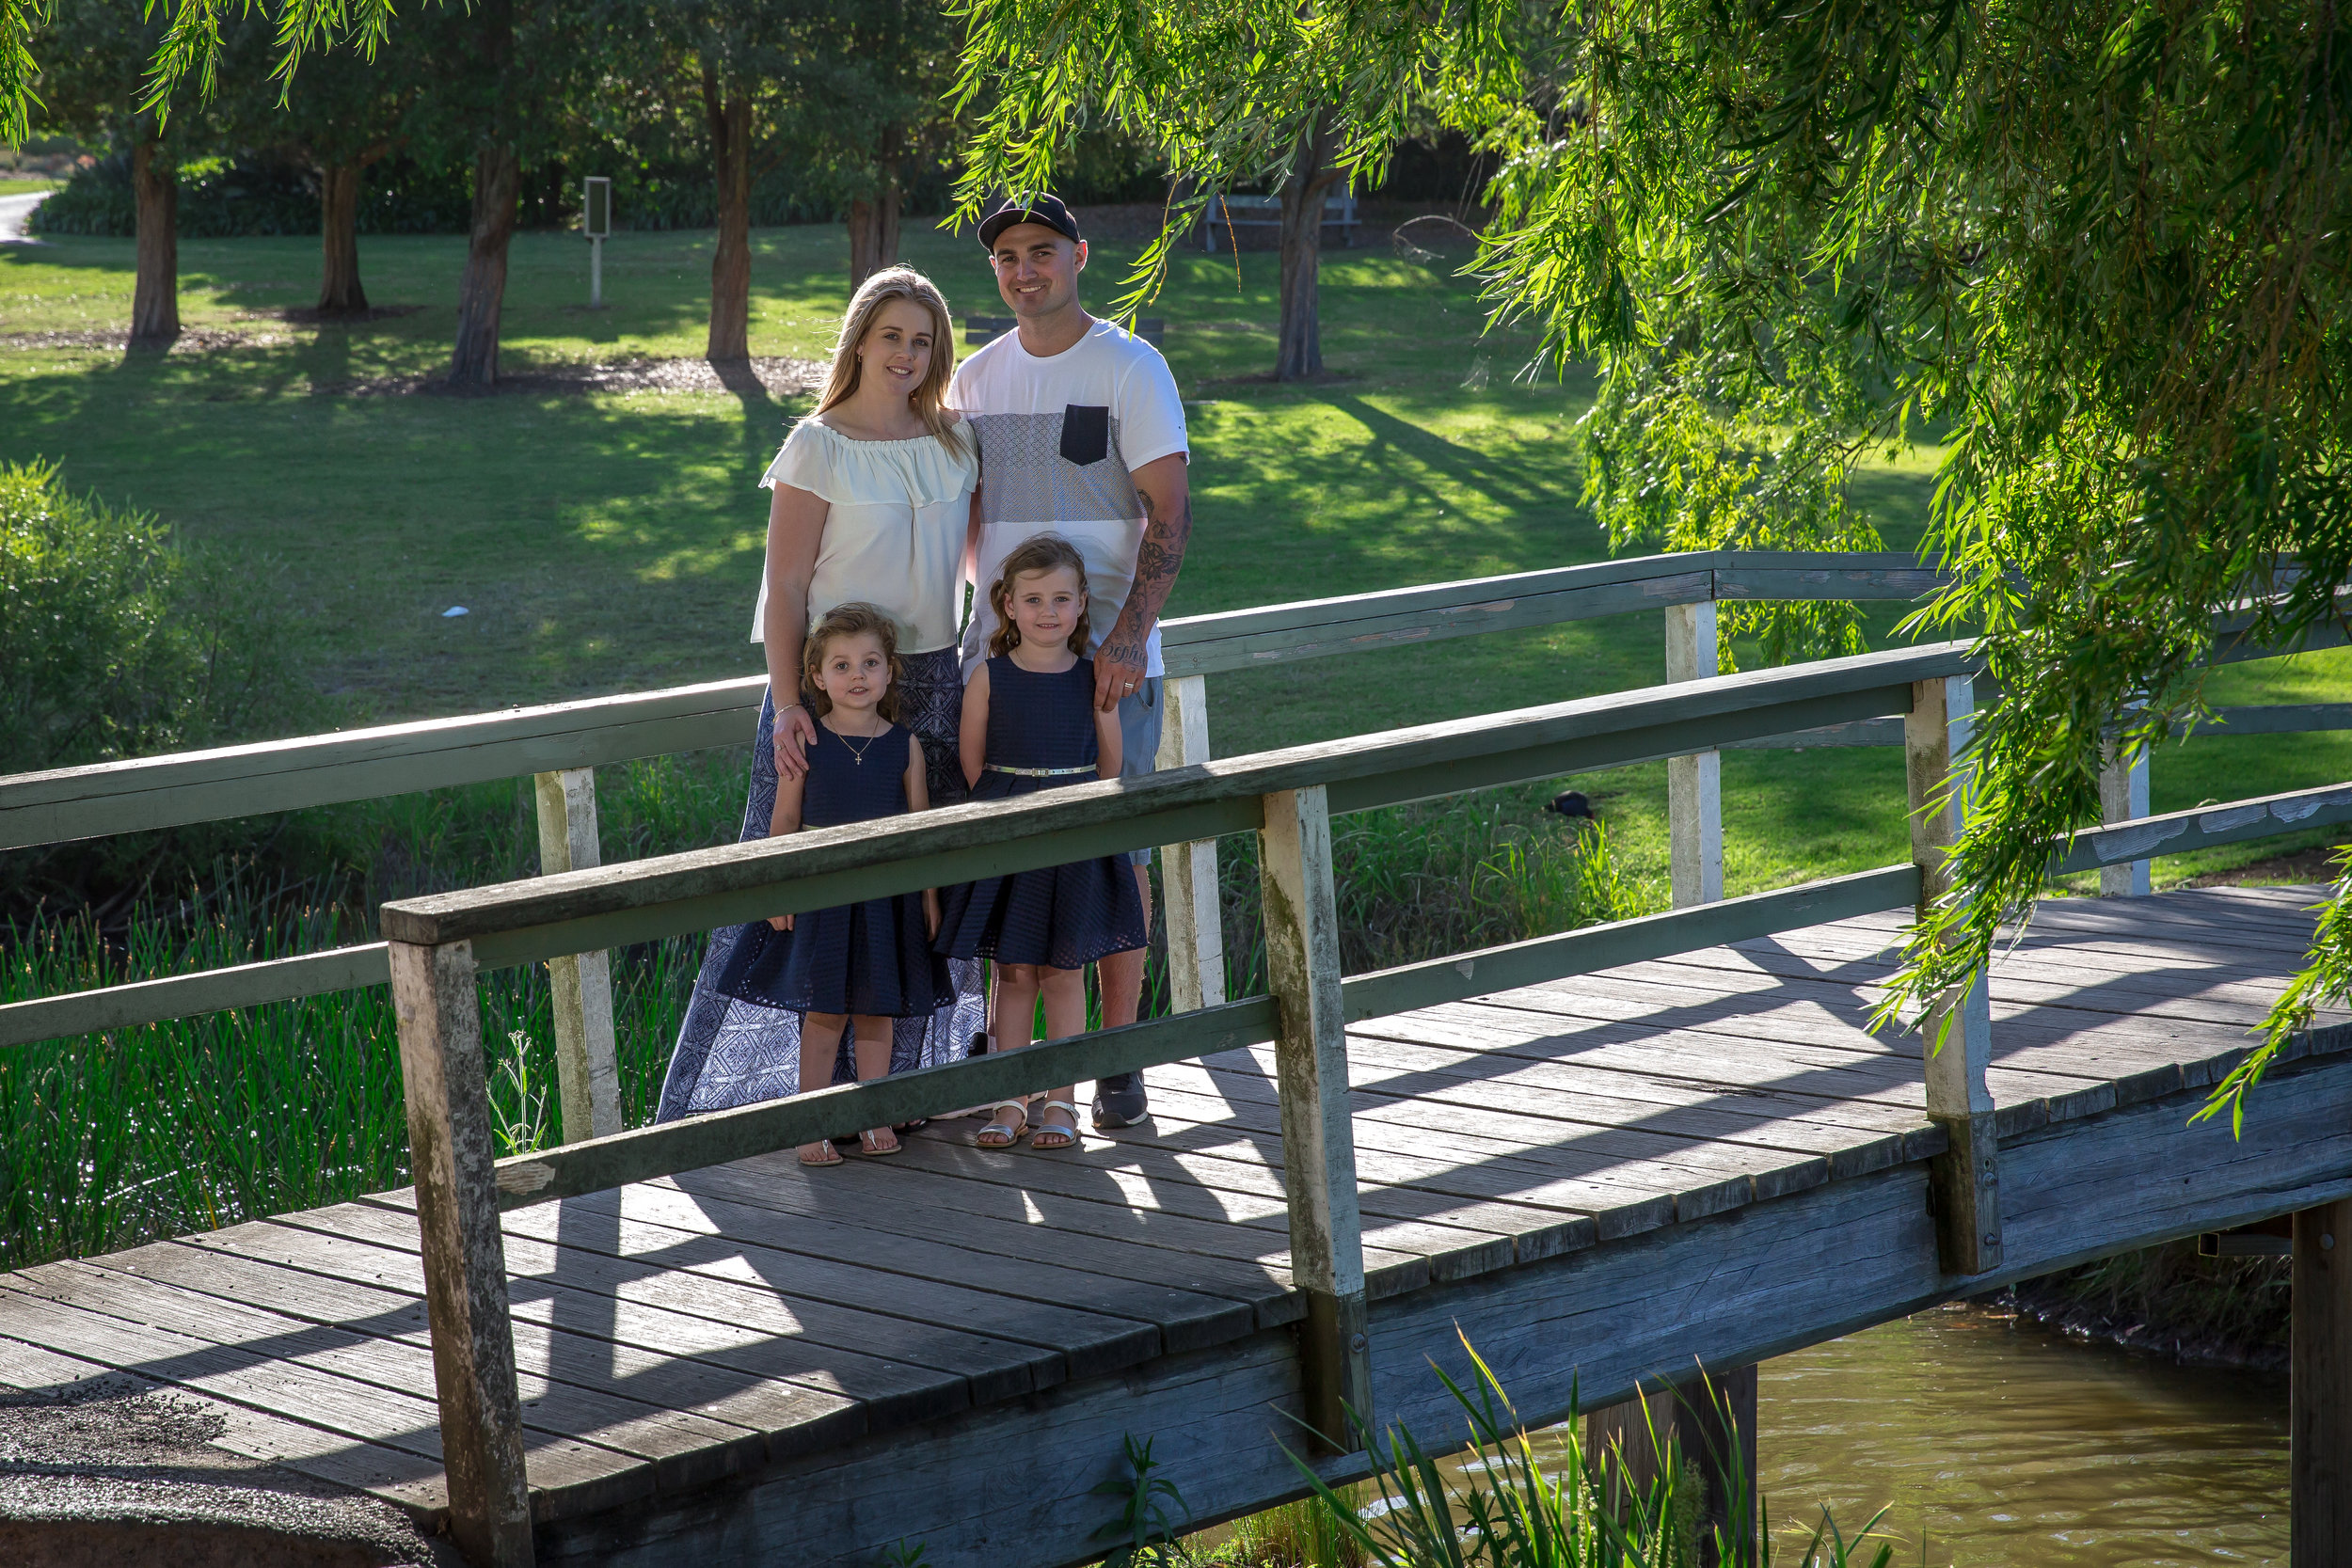 fagan-park-family-photographer-sydney-1800829994